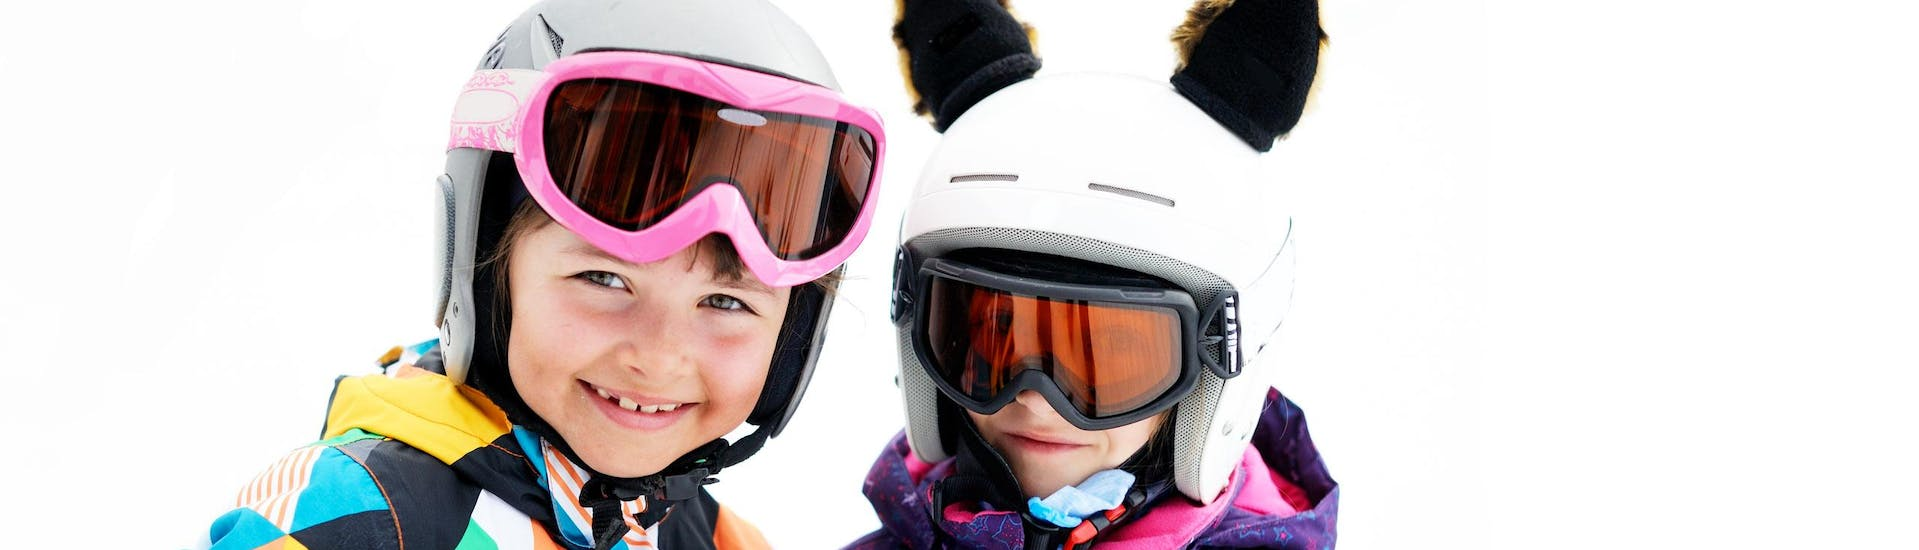 Two young children smiling at the camera during one of the Private Ski Lessons for Kids of All Levels organised by Engadin Snowsports.